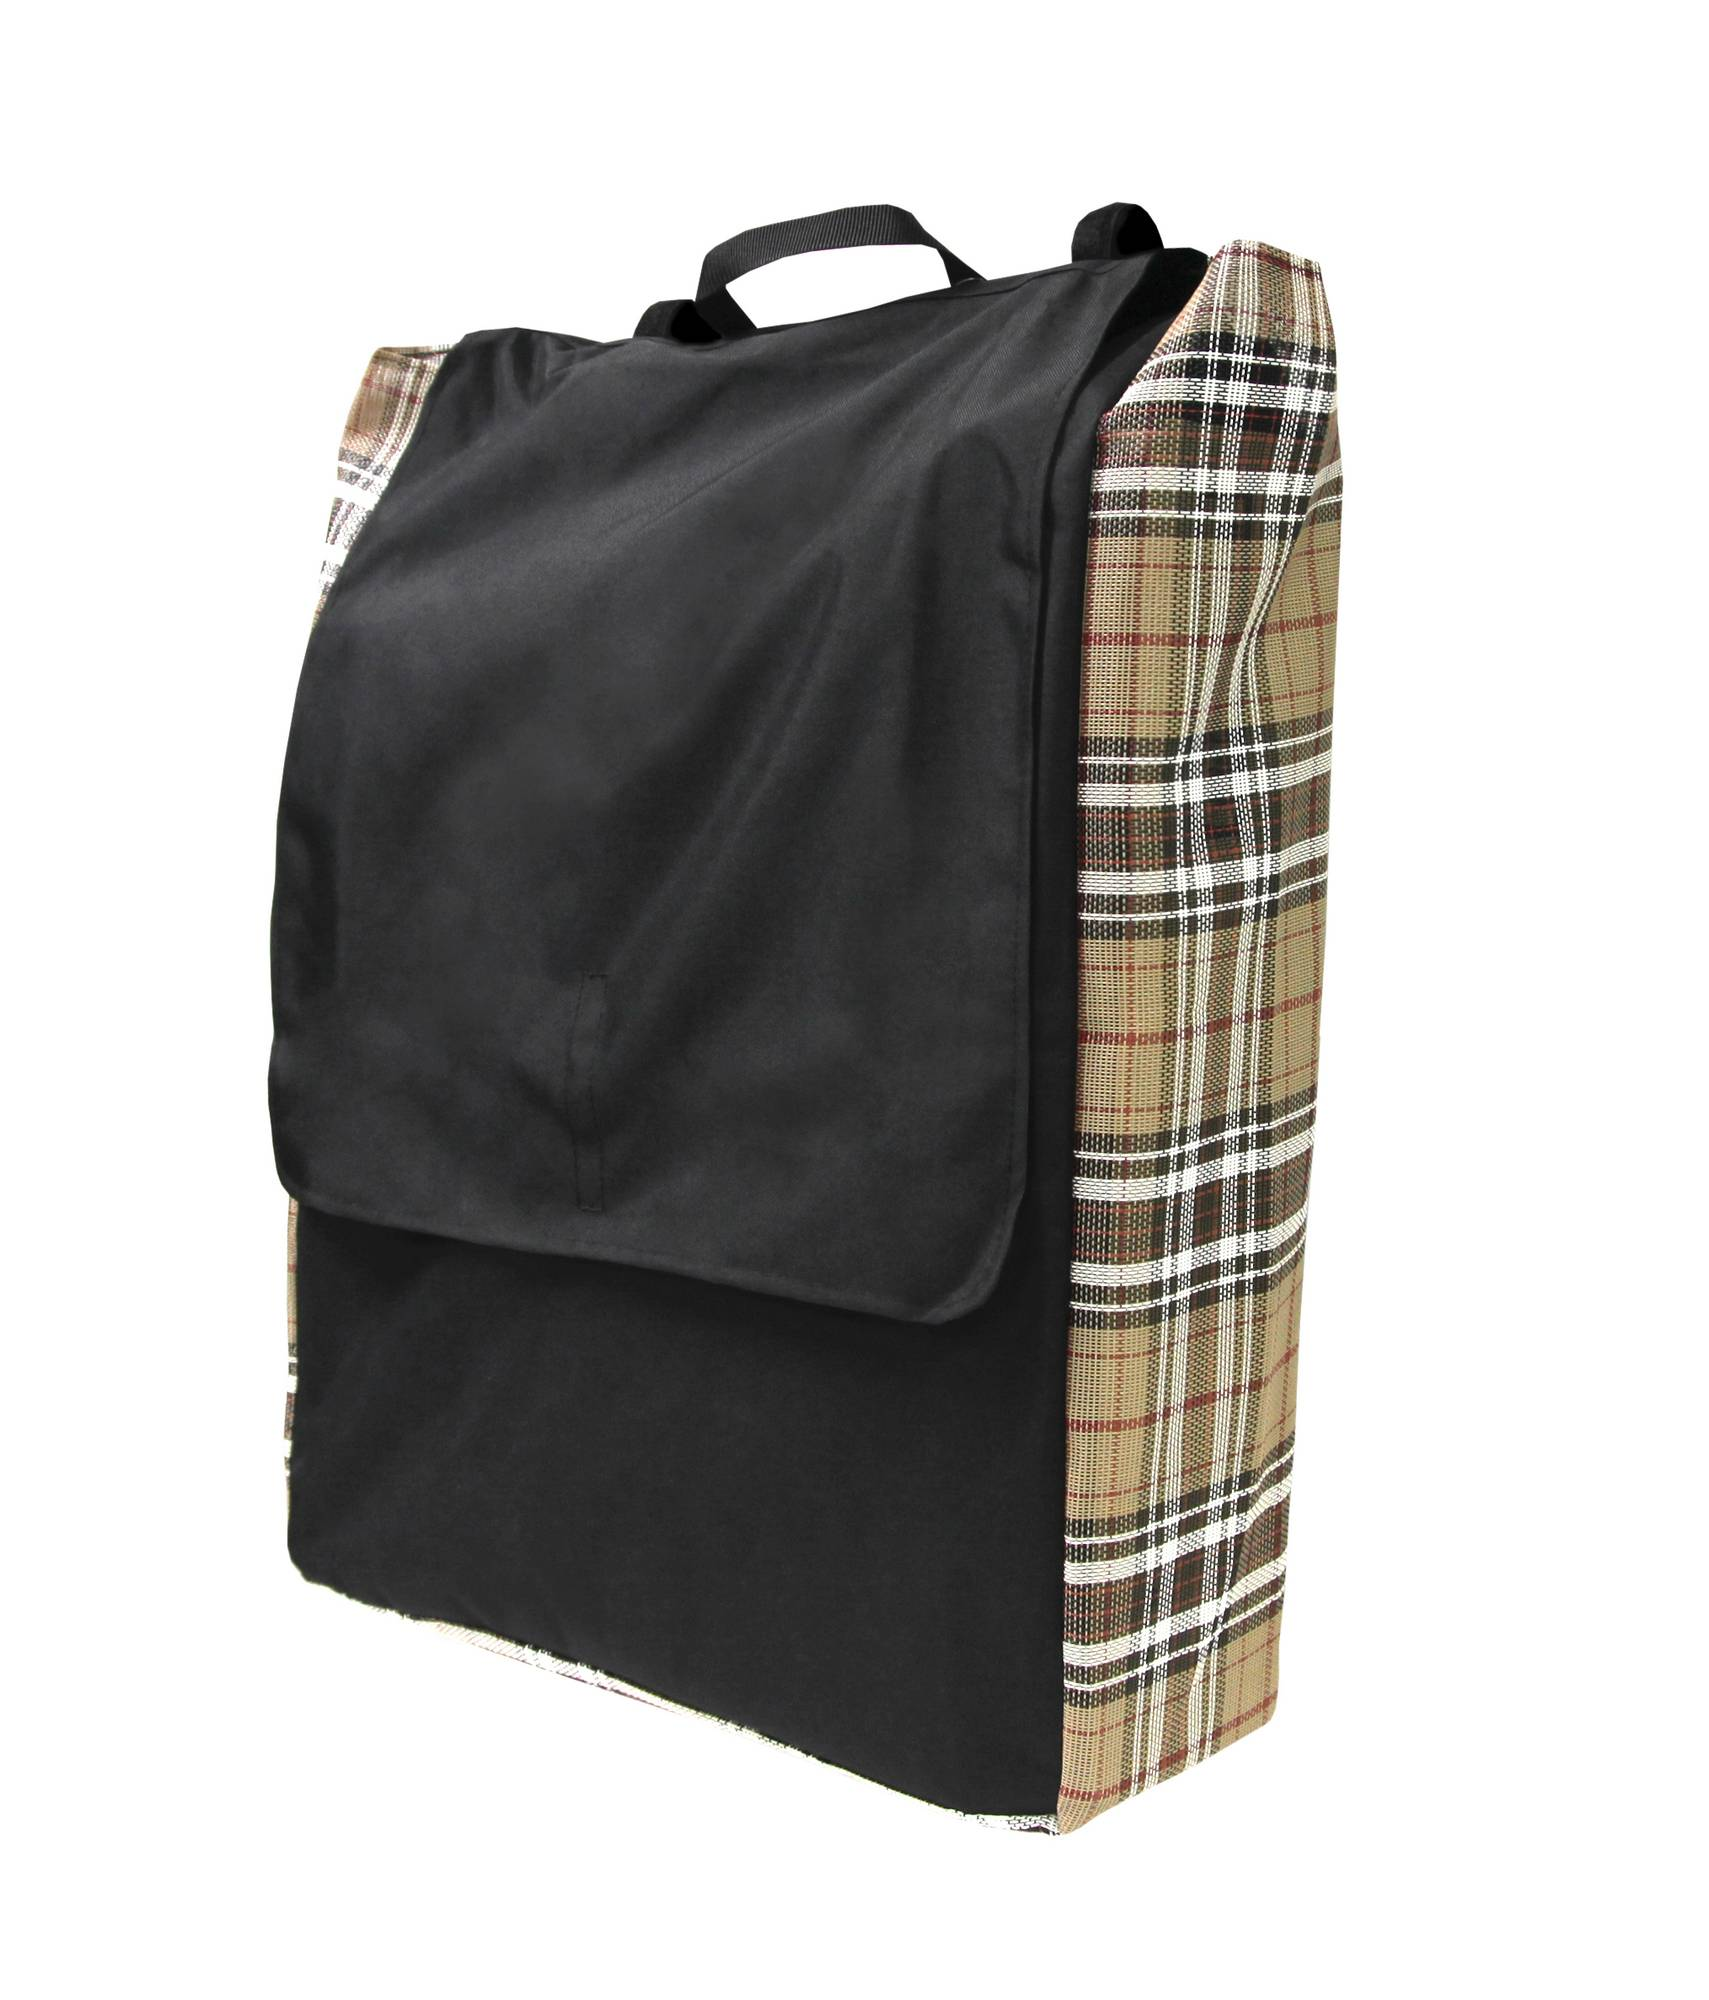 Kensington All Around Blanket Storage Bag